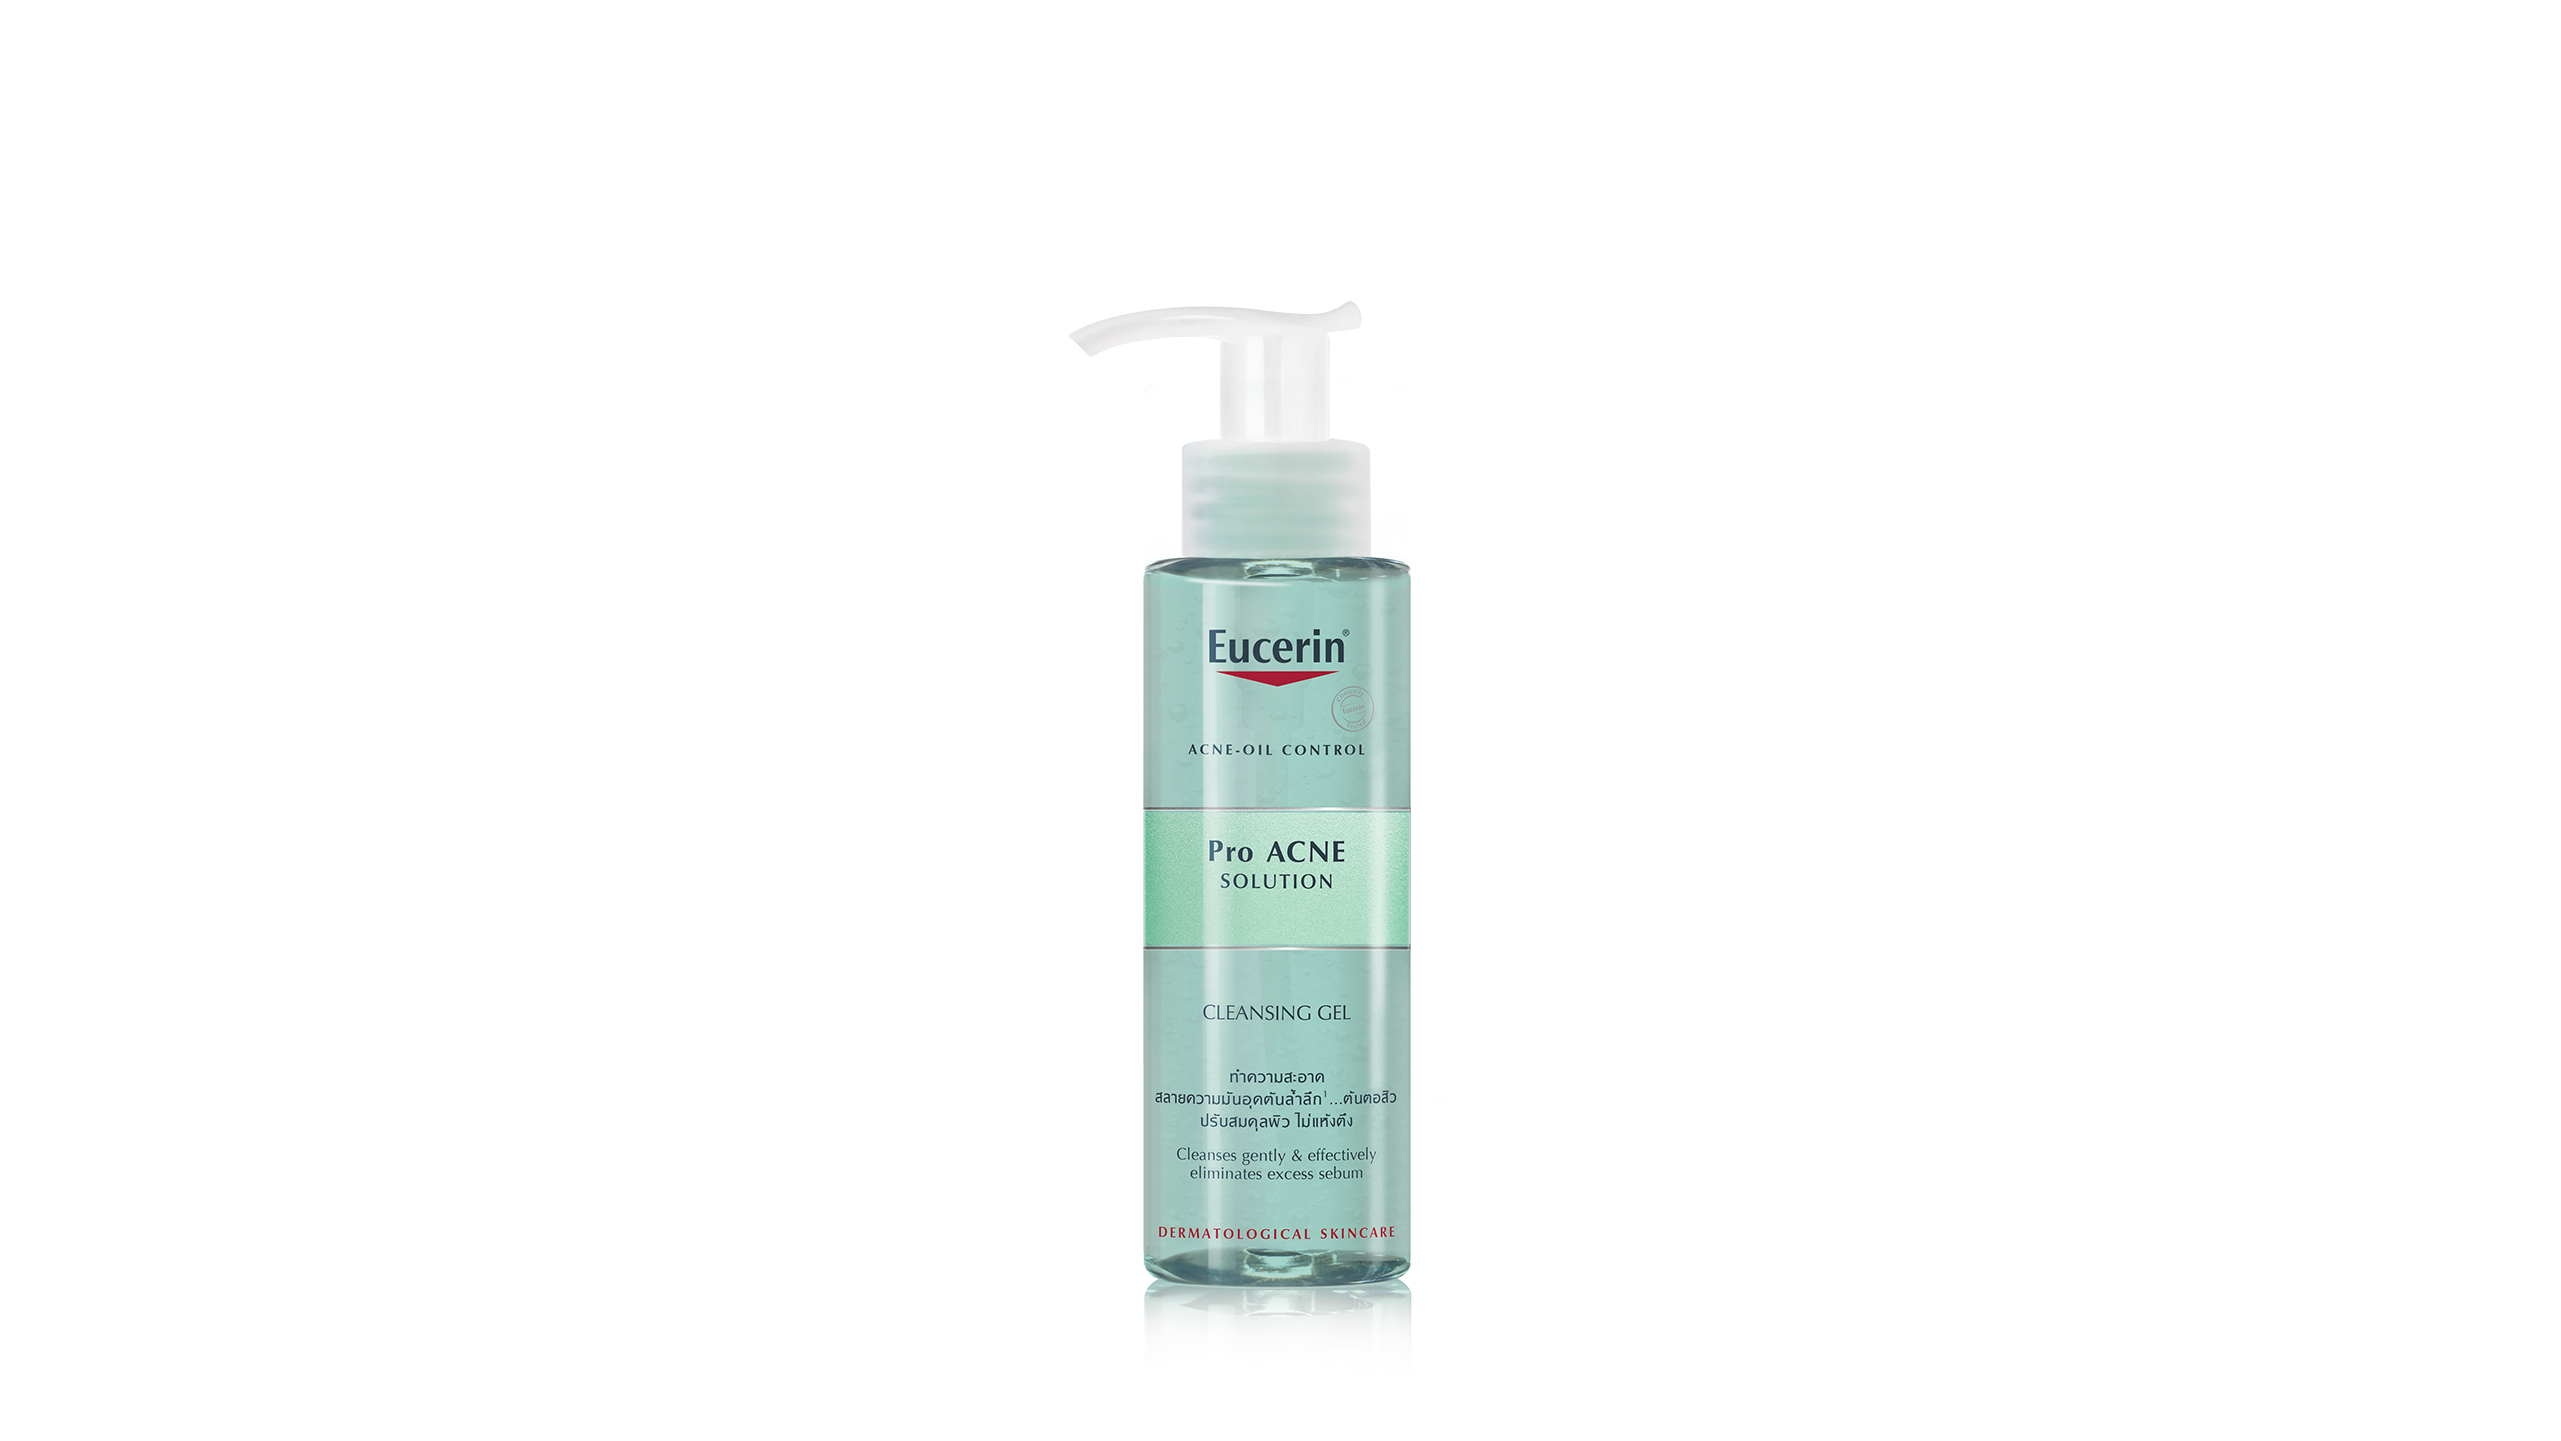 Eucerin Pro Acne Solution Cleansing Gel 200ml.